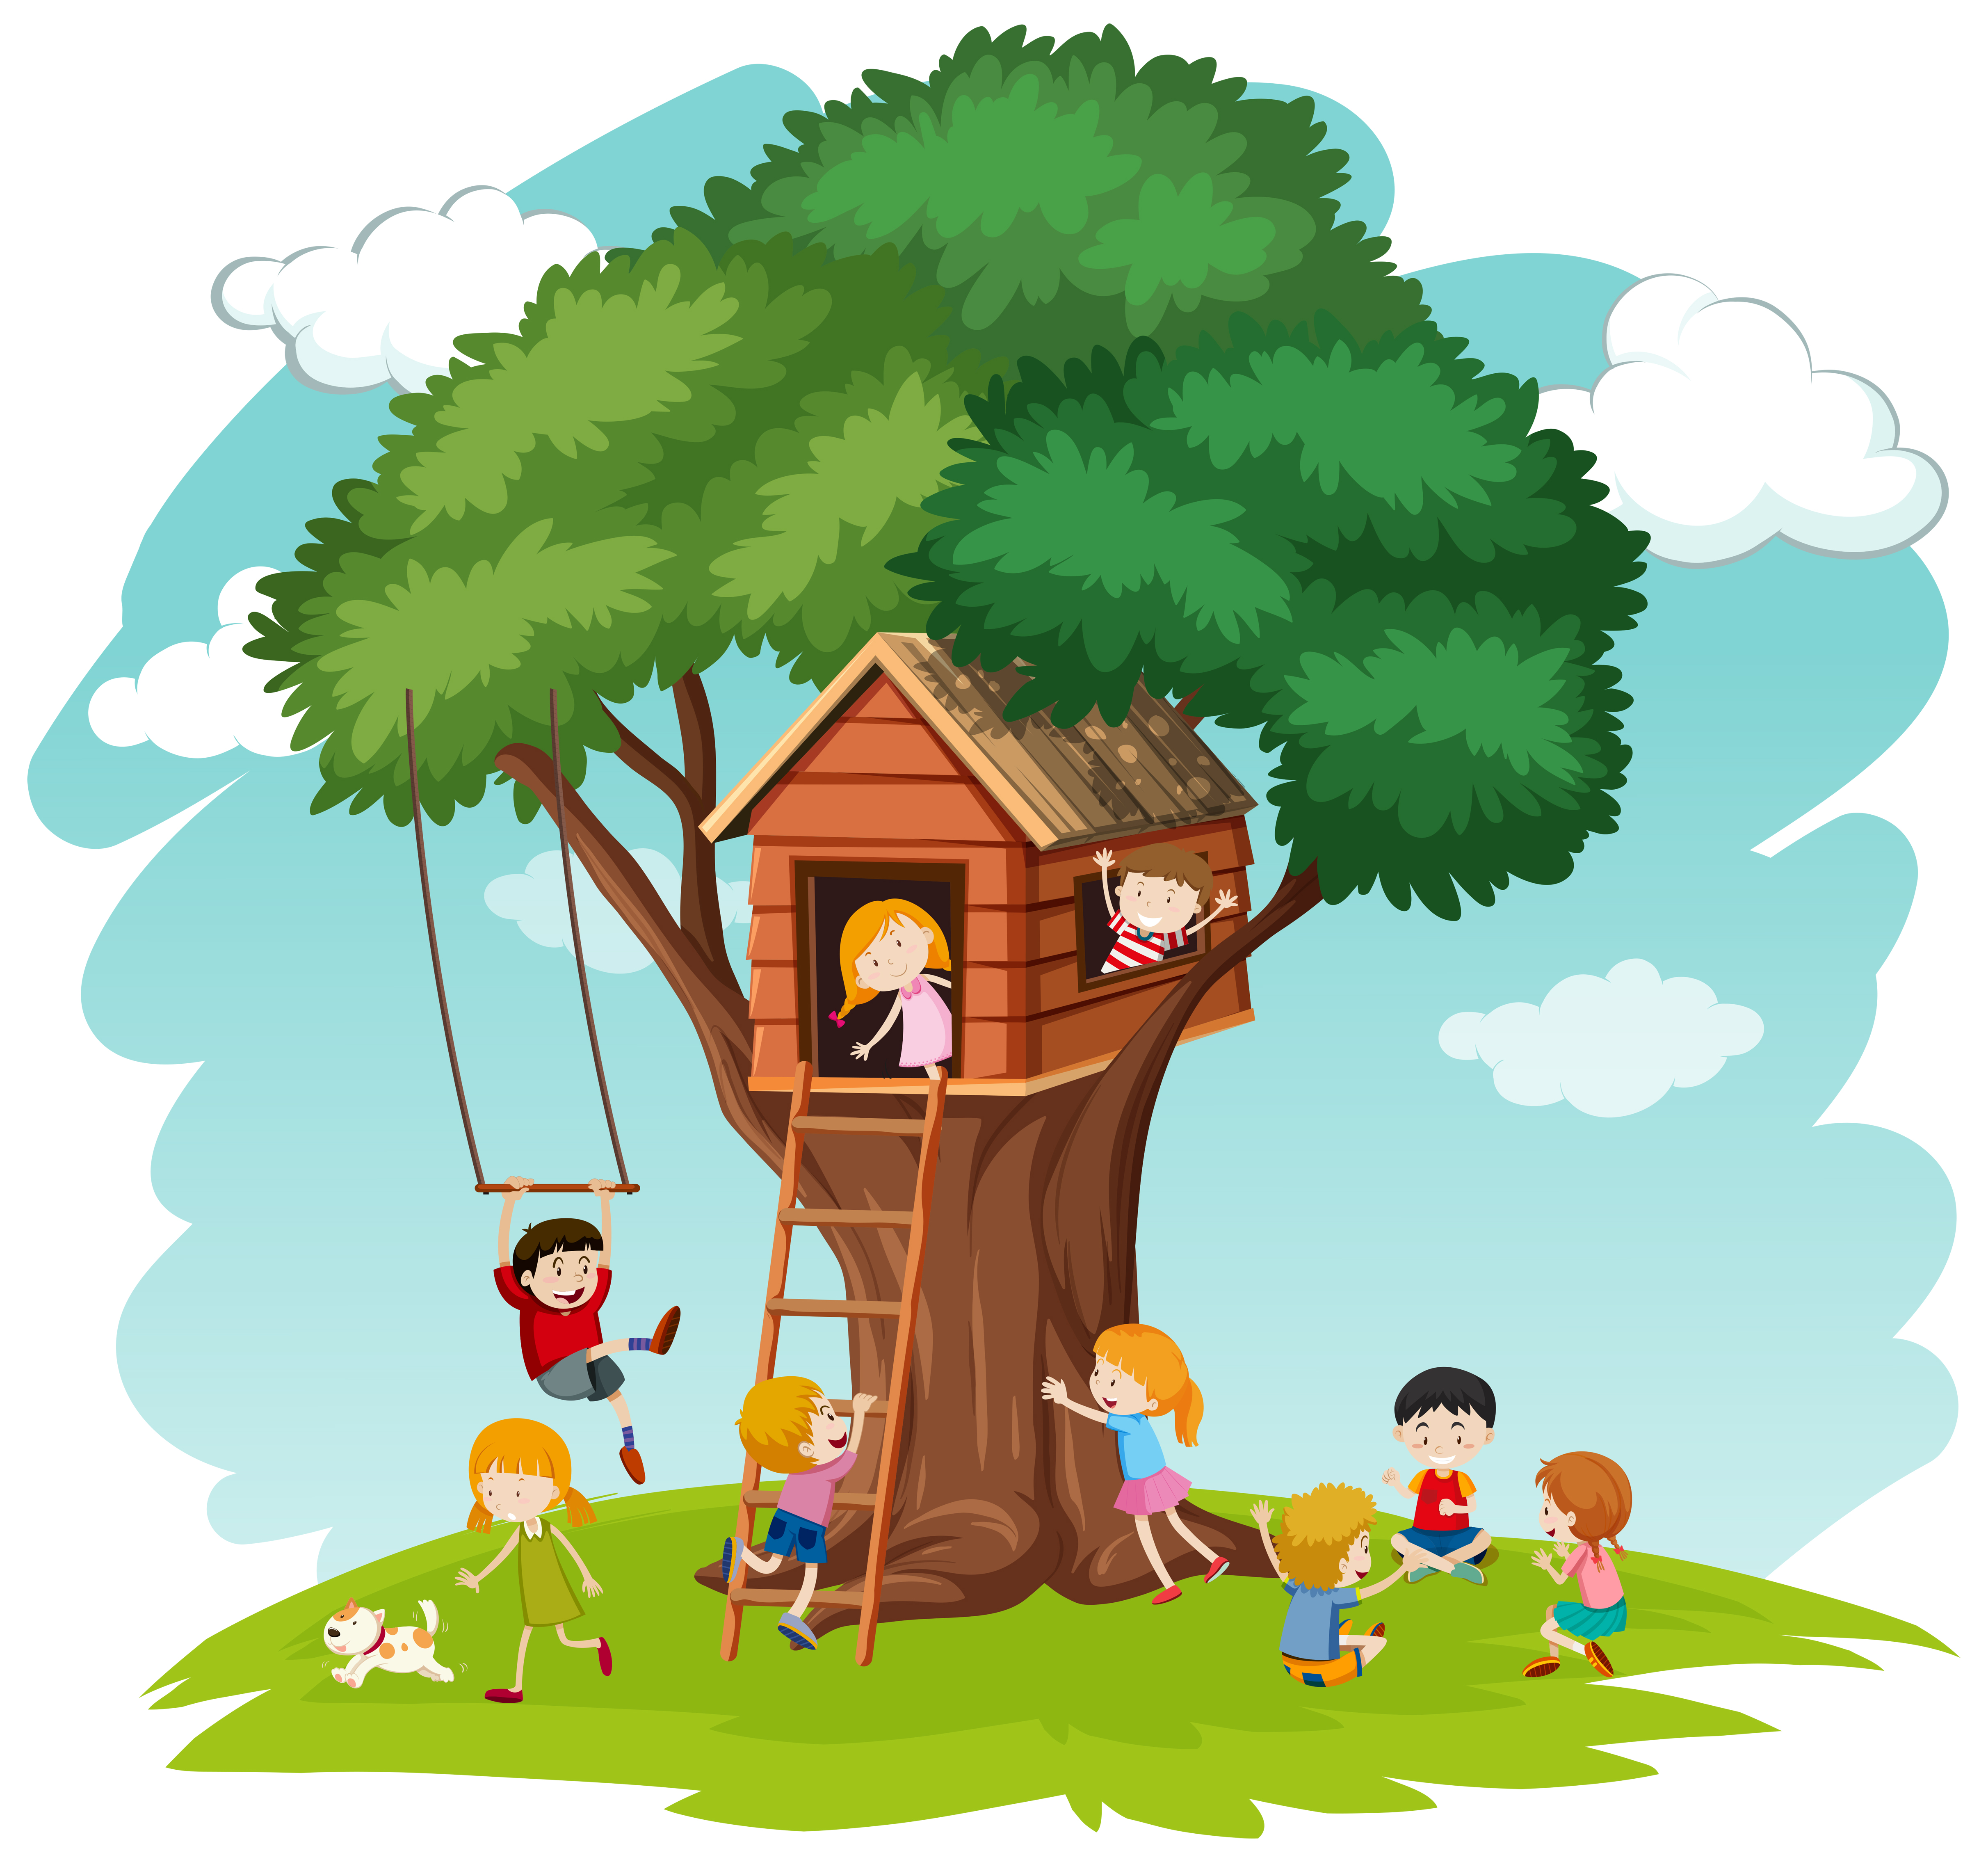 Picture of: Children At Tree House Download Free Vectors Clipart Graphics Vector Art